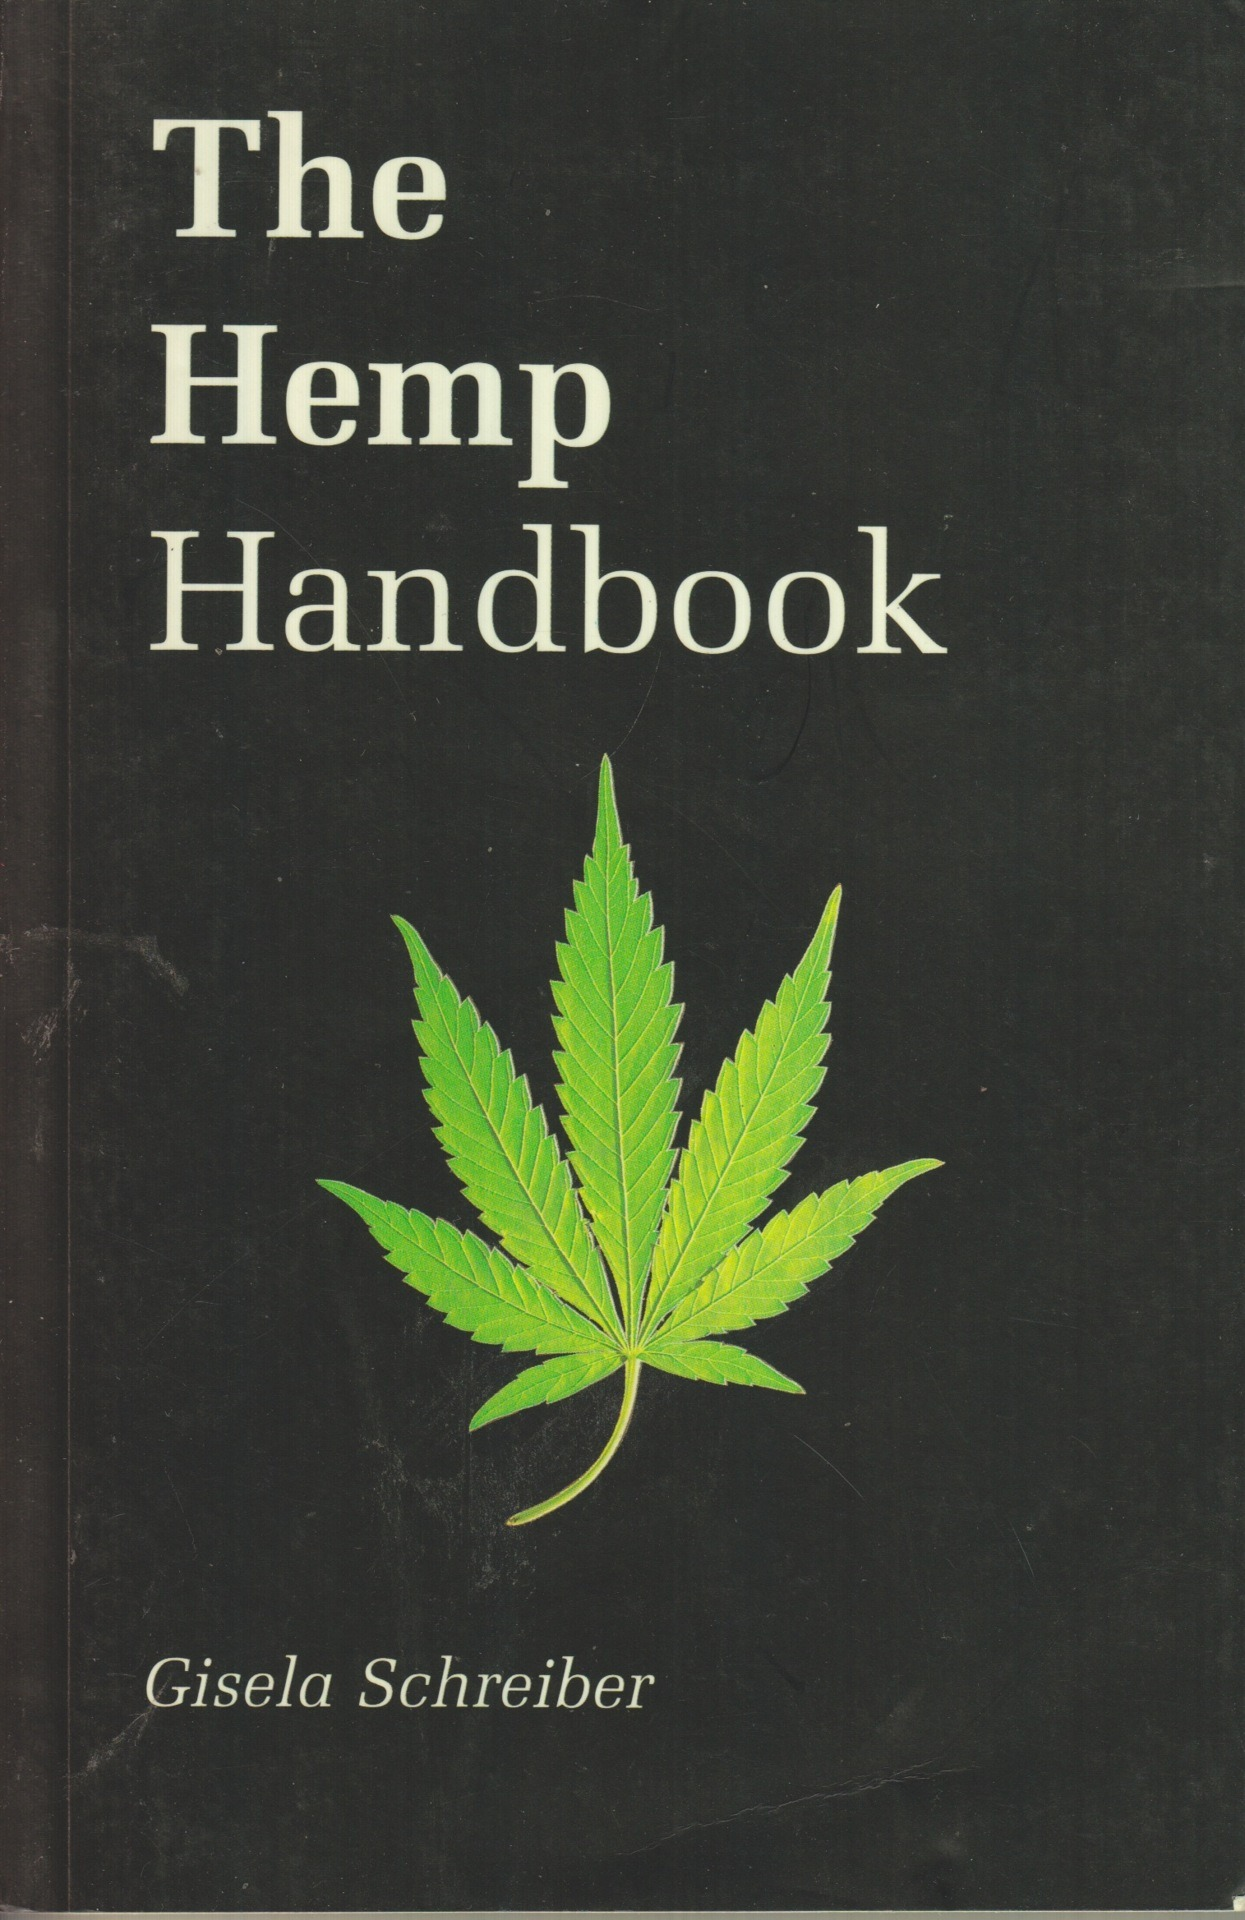 sandracoppertop:  The Hemp Handbook by Gisela Schreiber